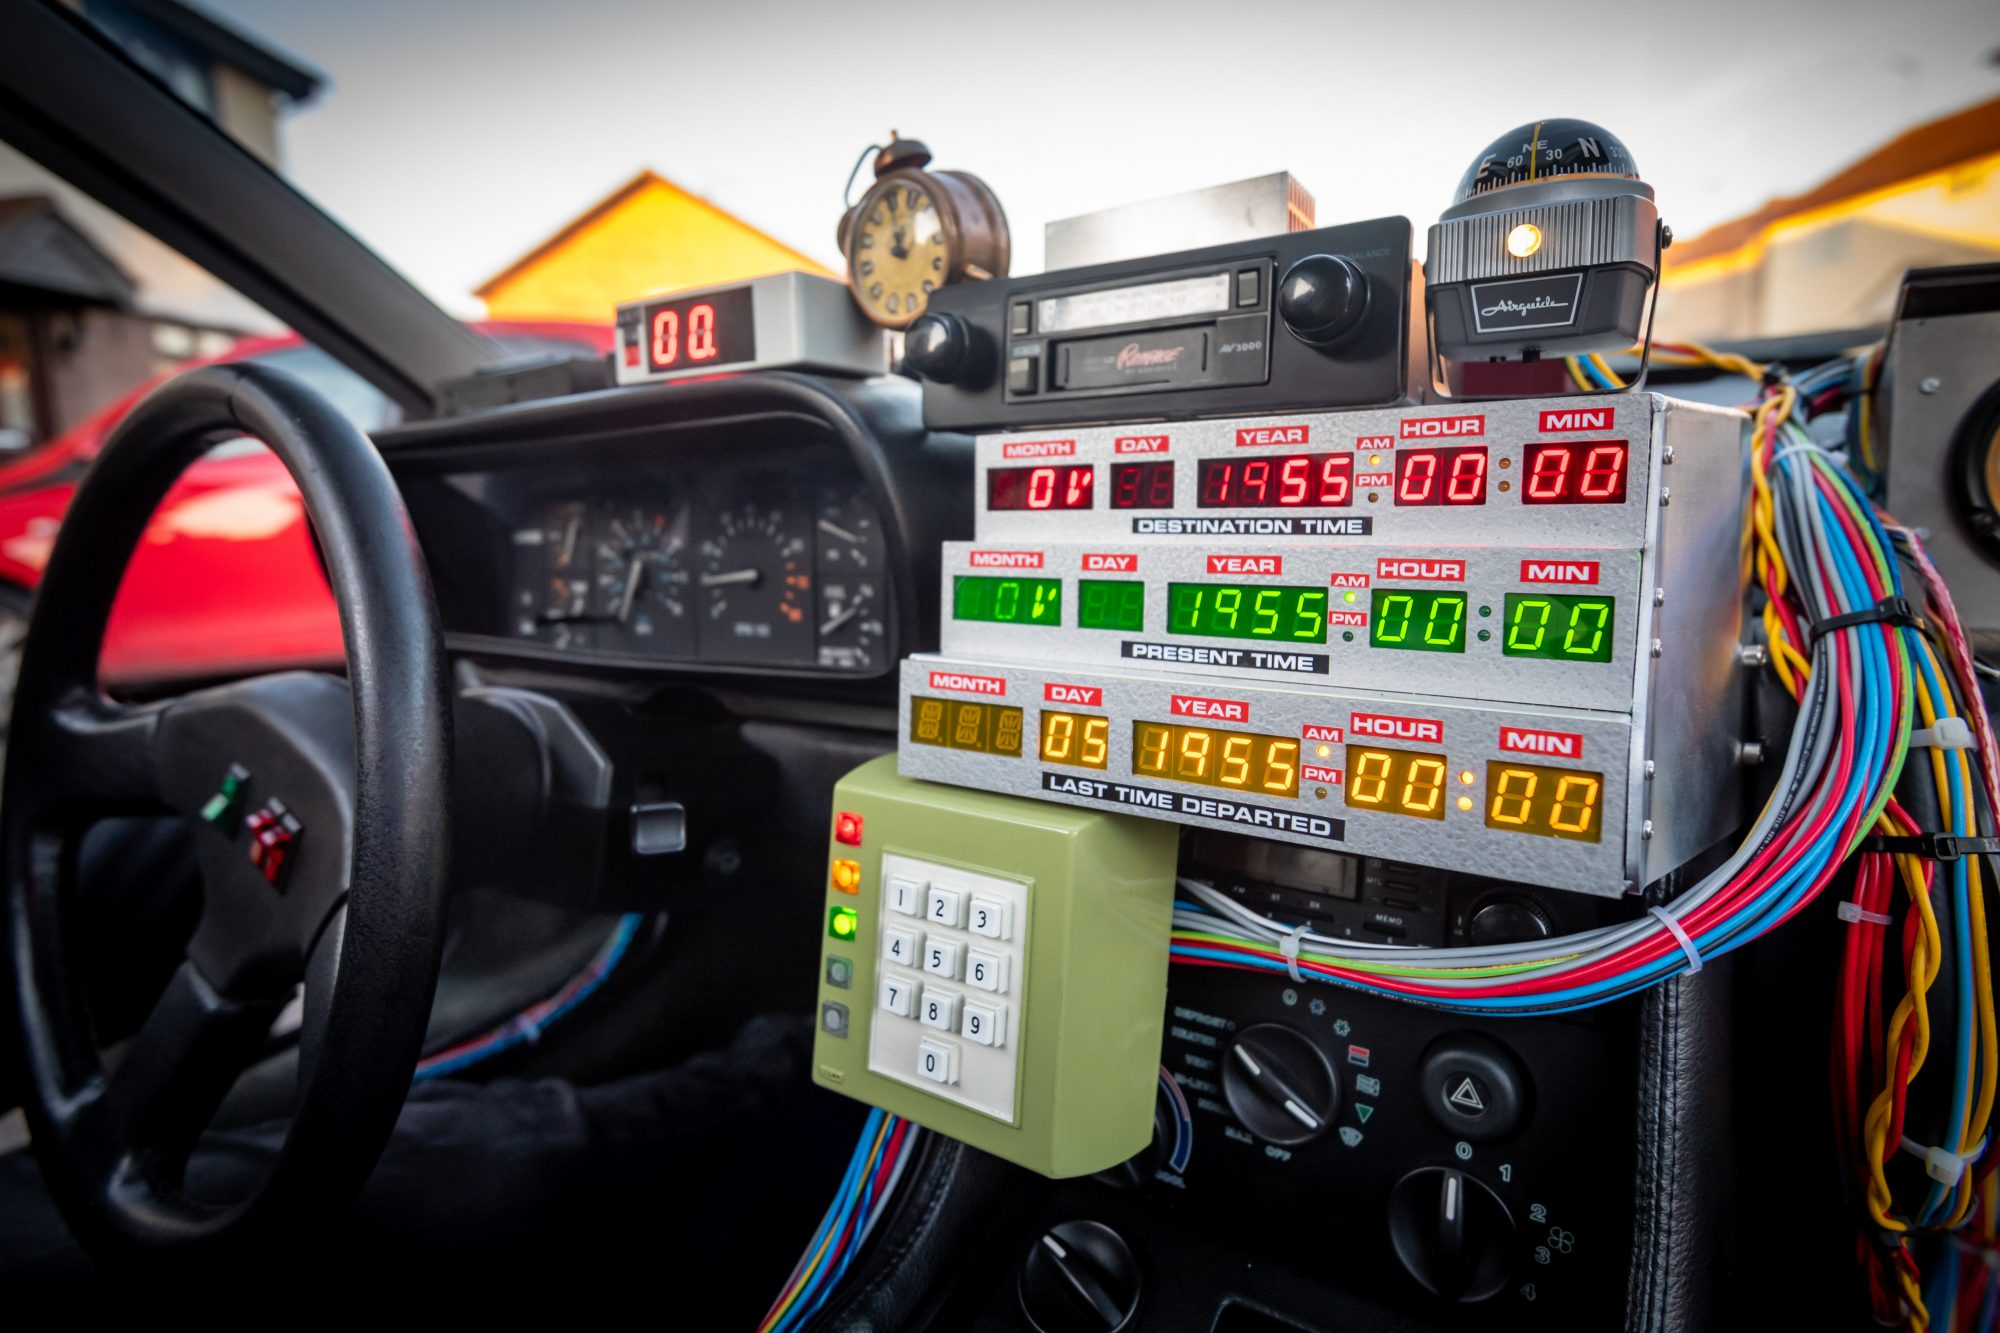 BTTF car time circuits